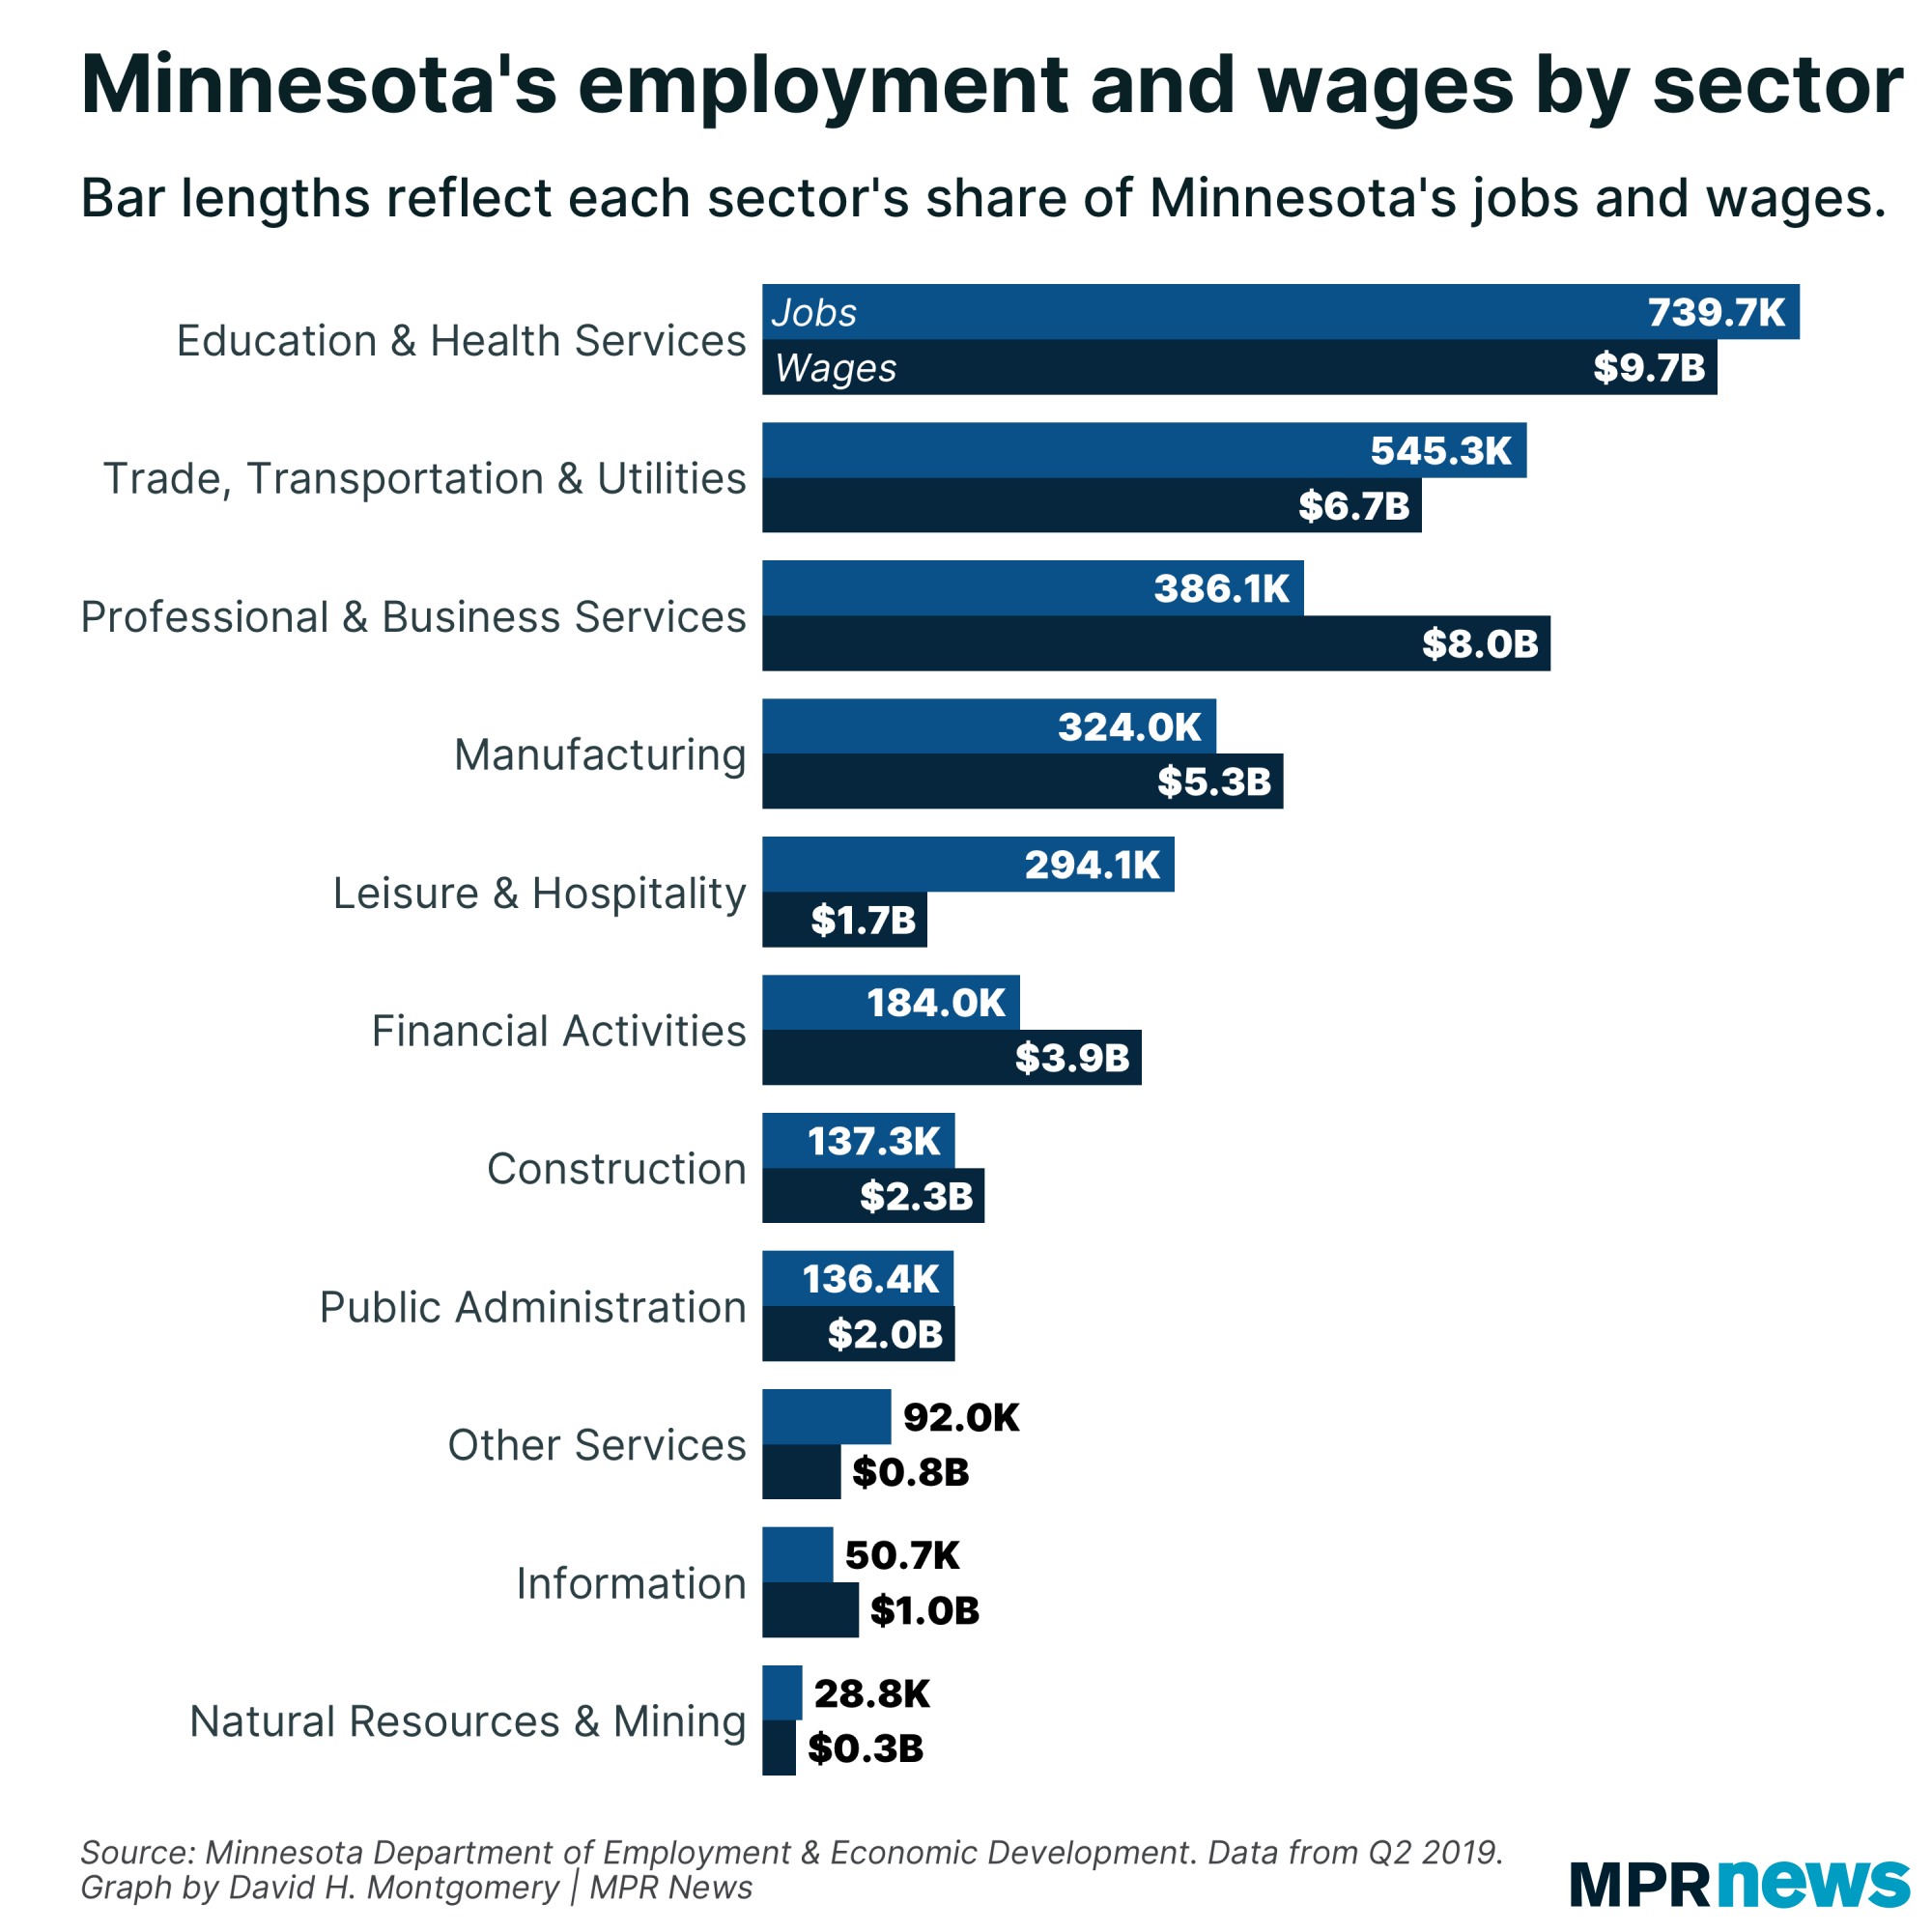 Minnesota's employment and wages by sector